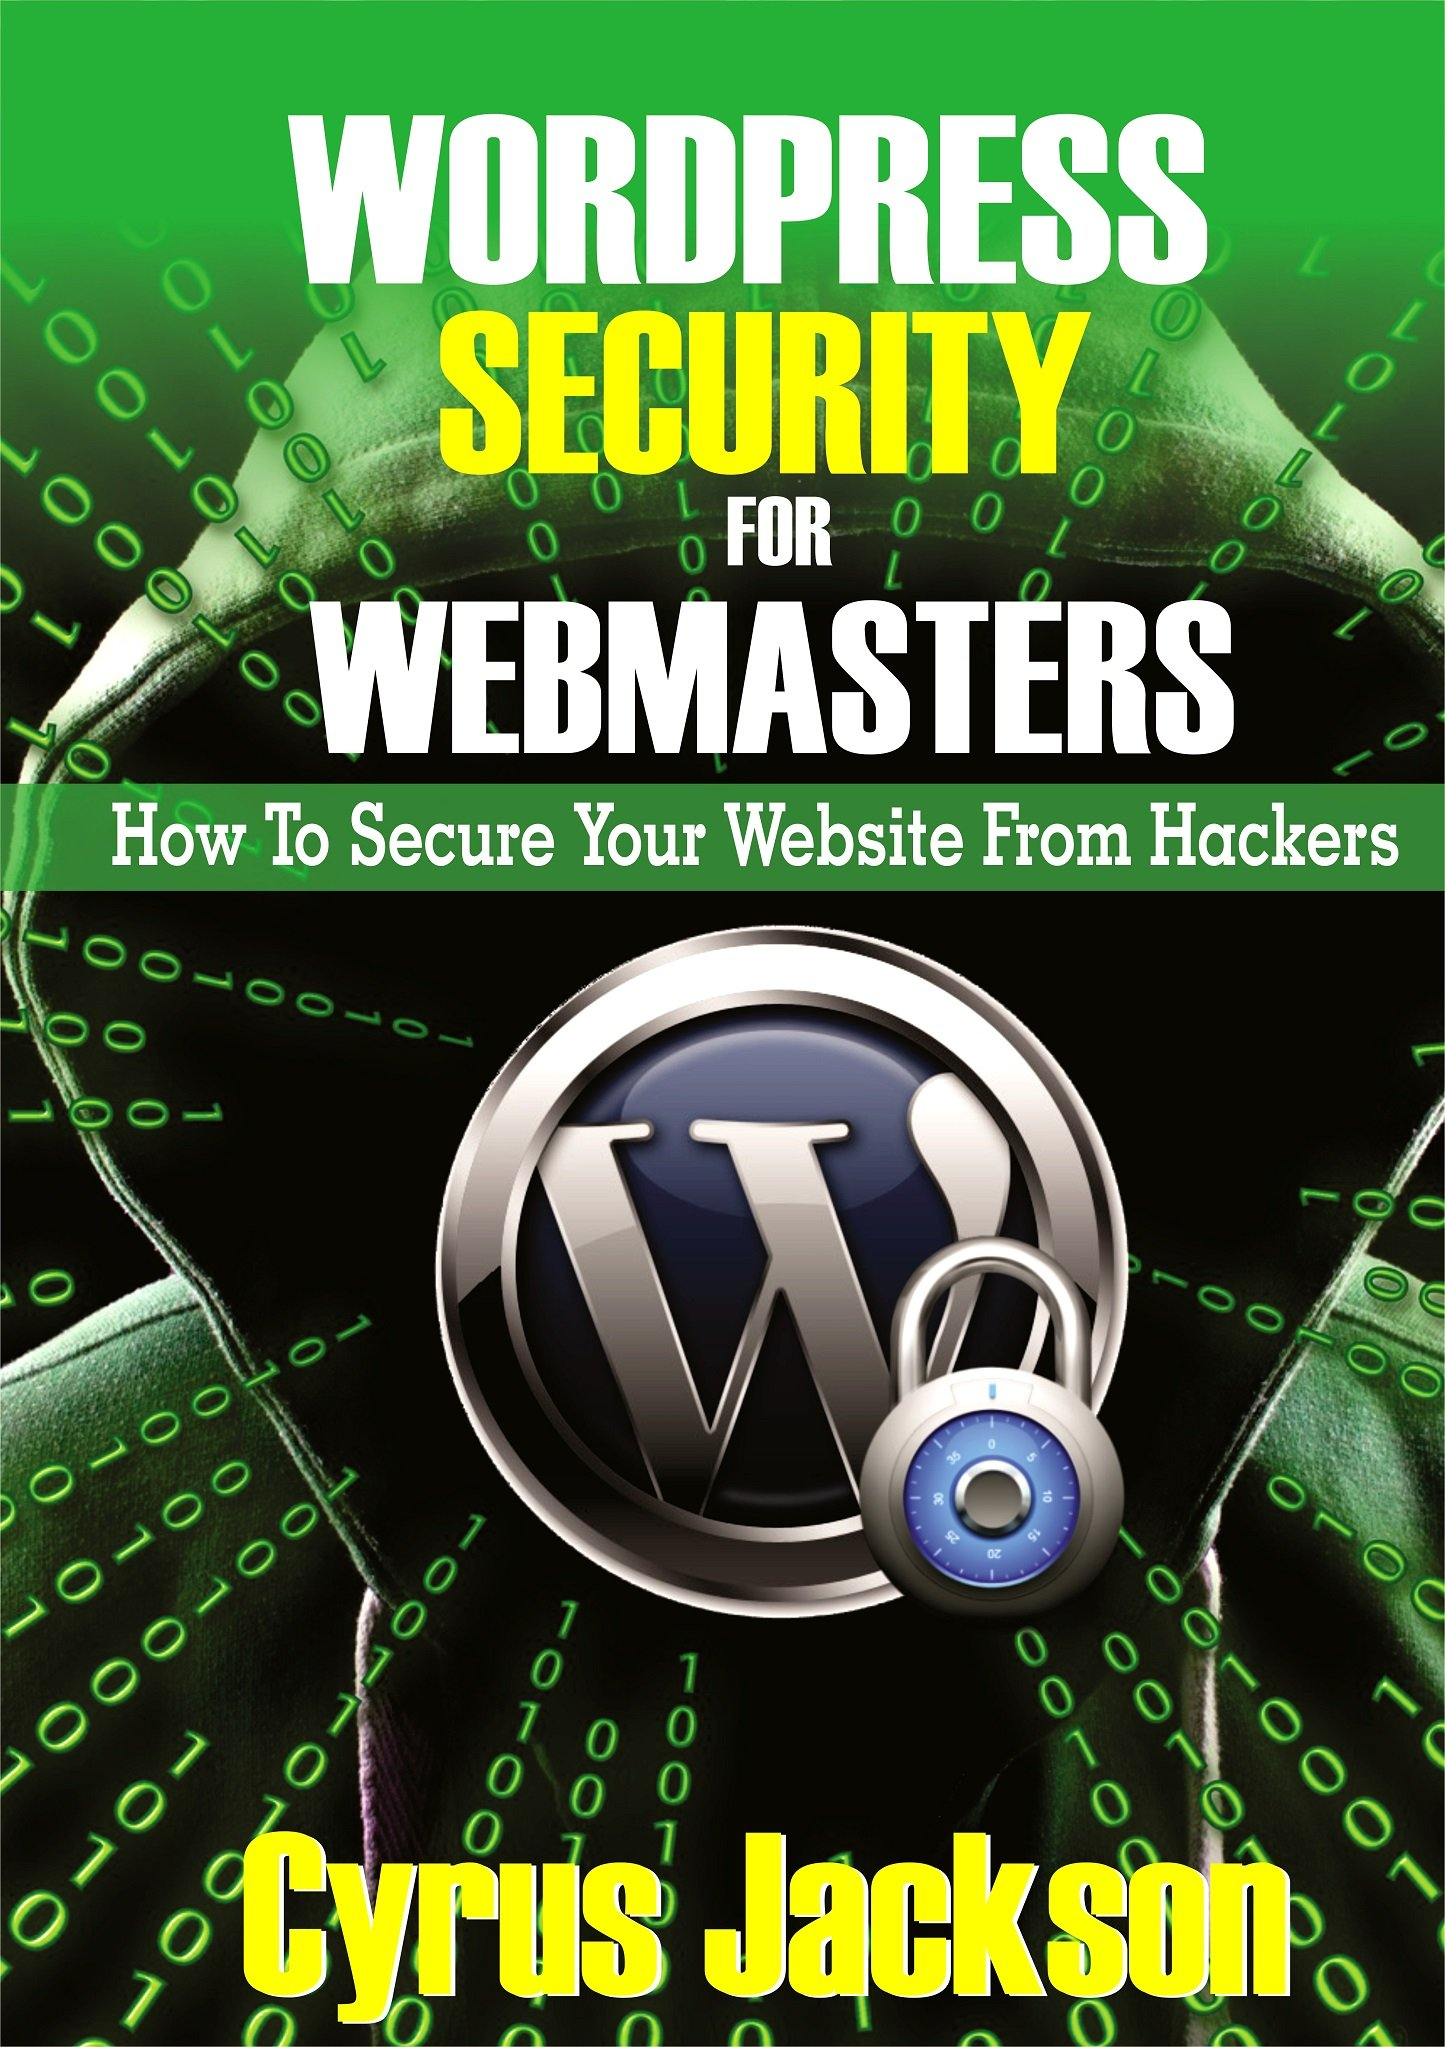 WordPress Security For Webmasters 2020: How To Secure Your Website From Hackers (Step By Step Guide For Beginners)